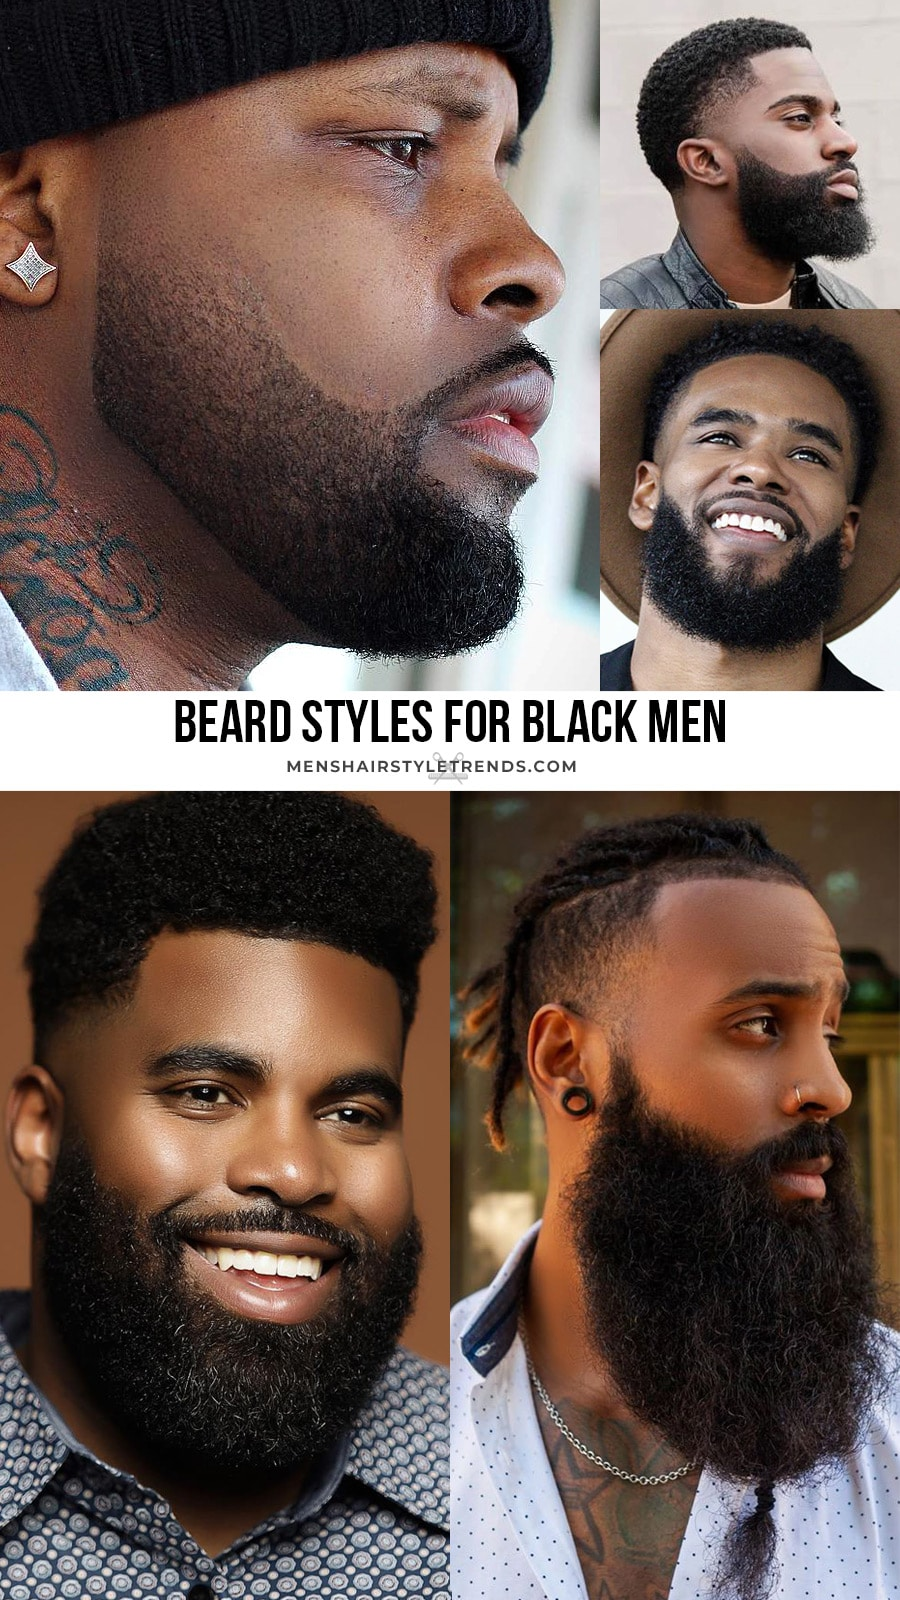 Beard styles for Black men